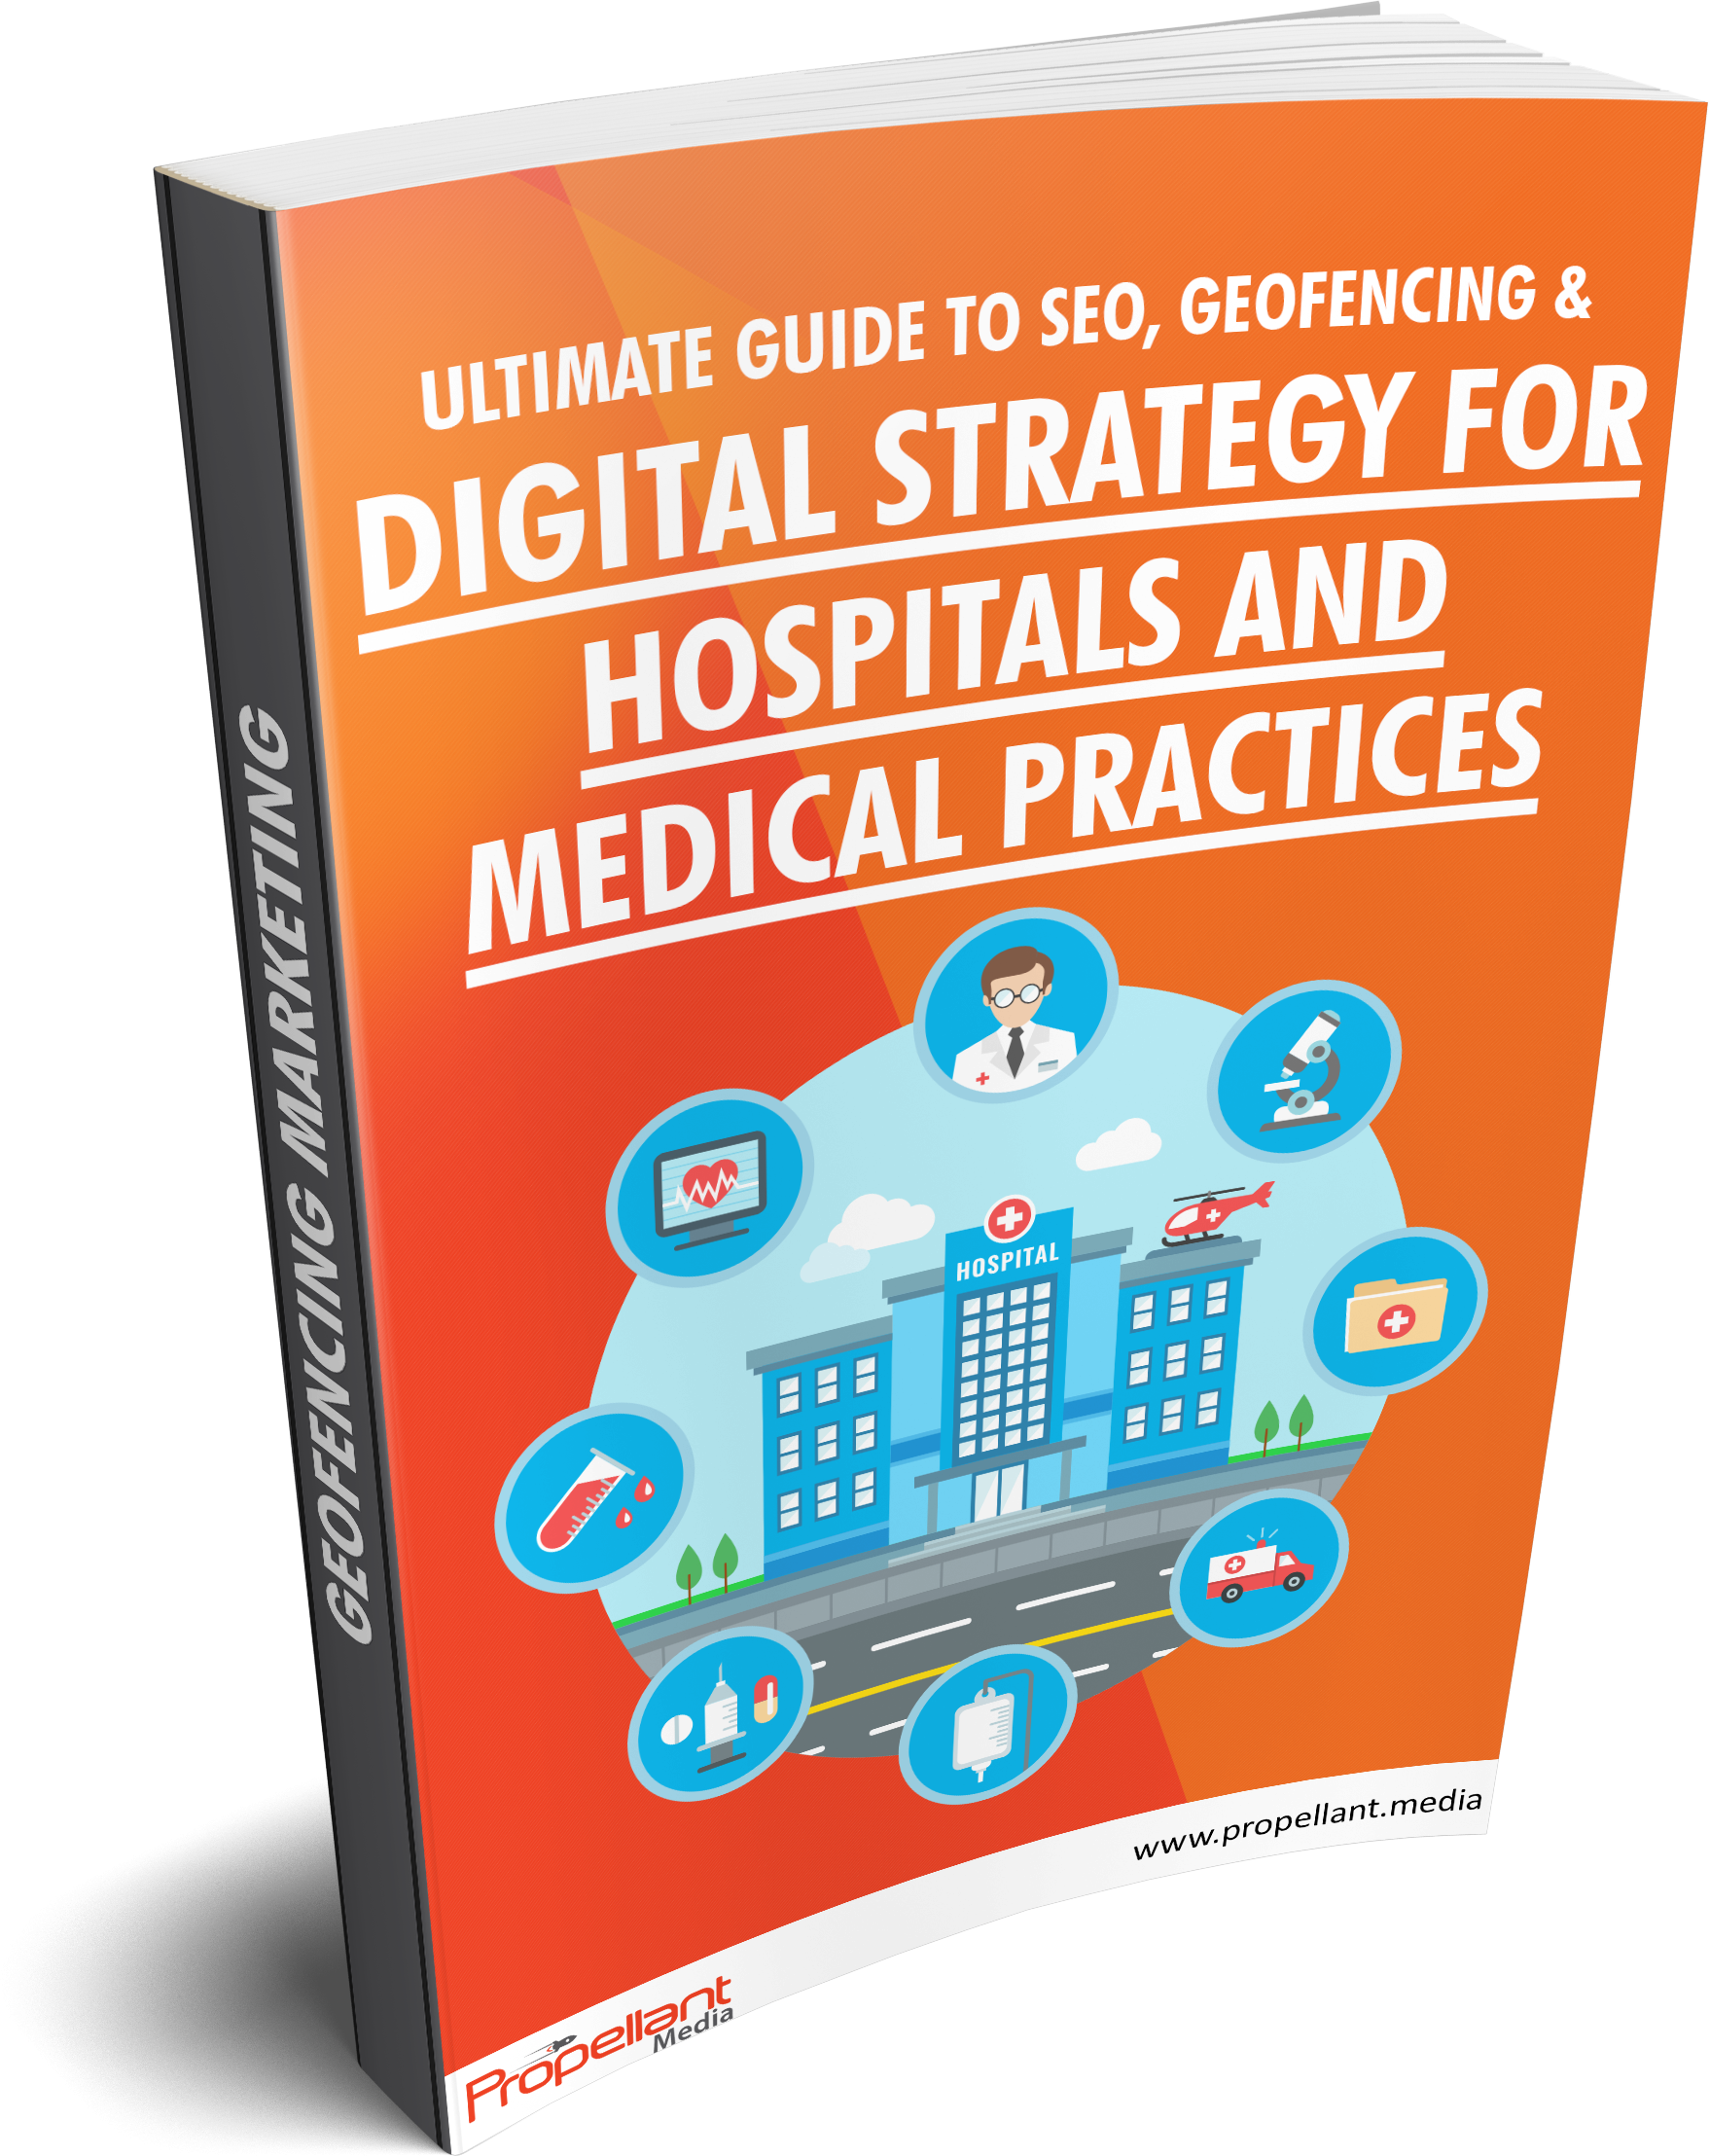 Healthcare Geofencing & SEO Guide To Digital Marketing [Download Guide]